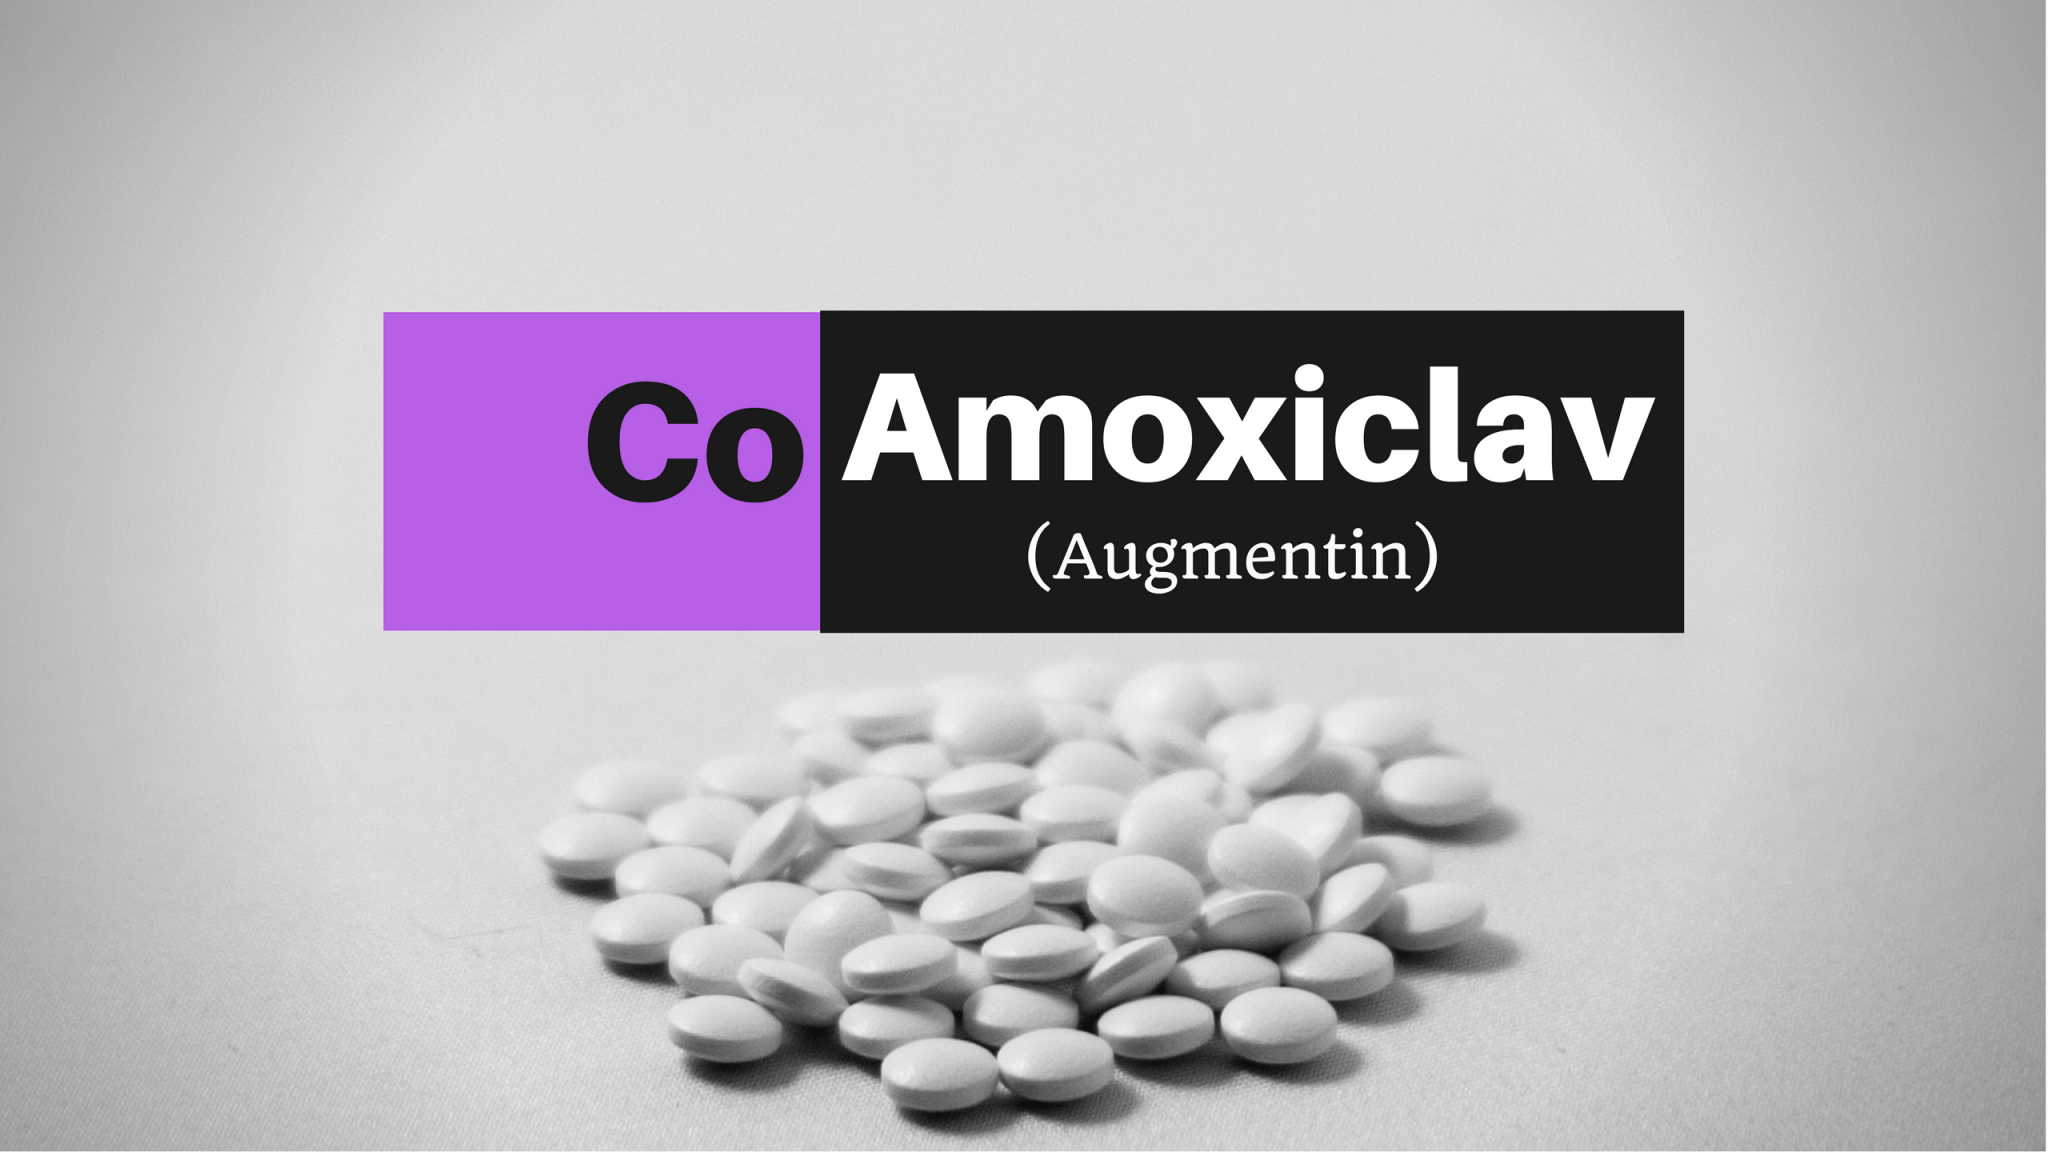 Co amoxiclav:Uses, Side Effects, Mechanism,Dosage - DrugsBank